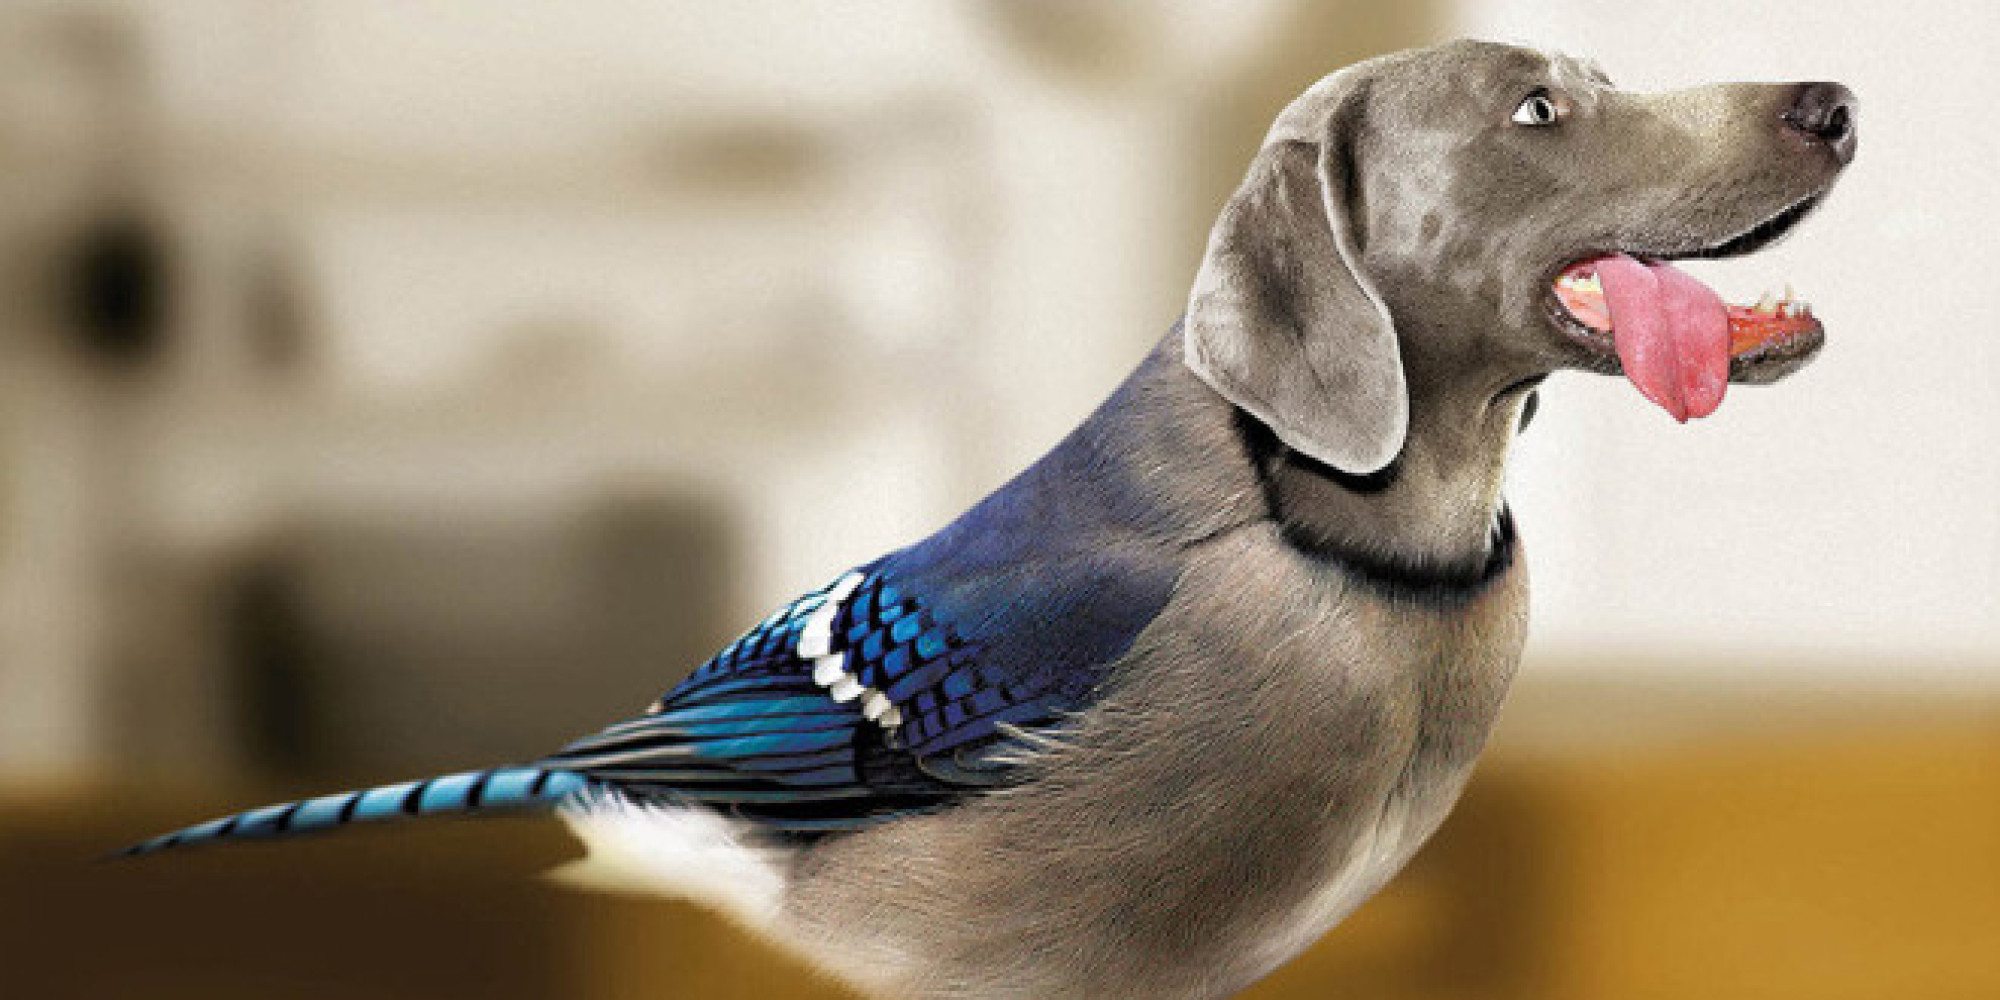 birds with dog heads and dogs with bird bodies are dirds